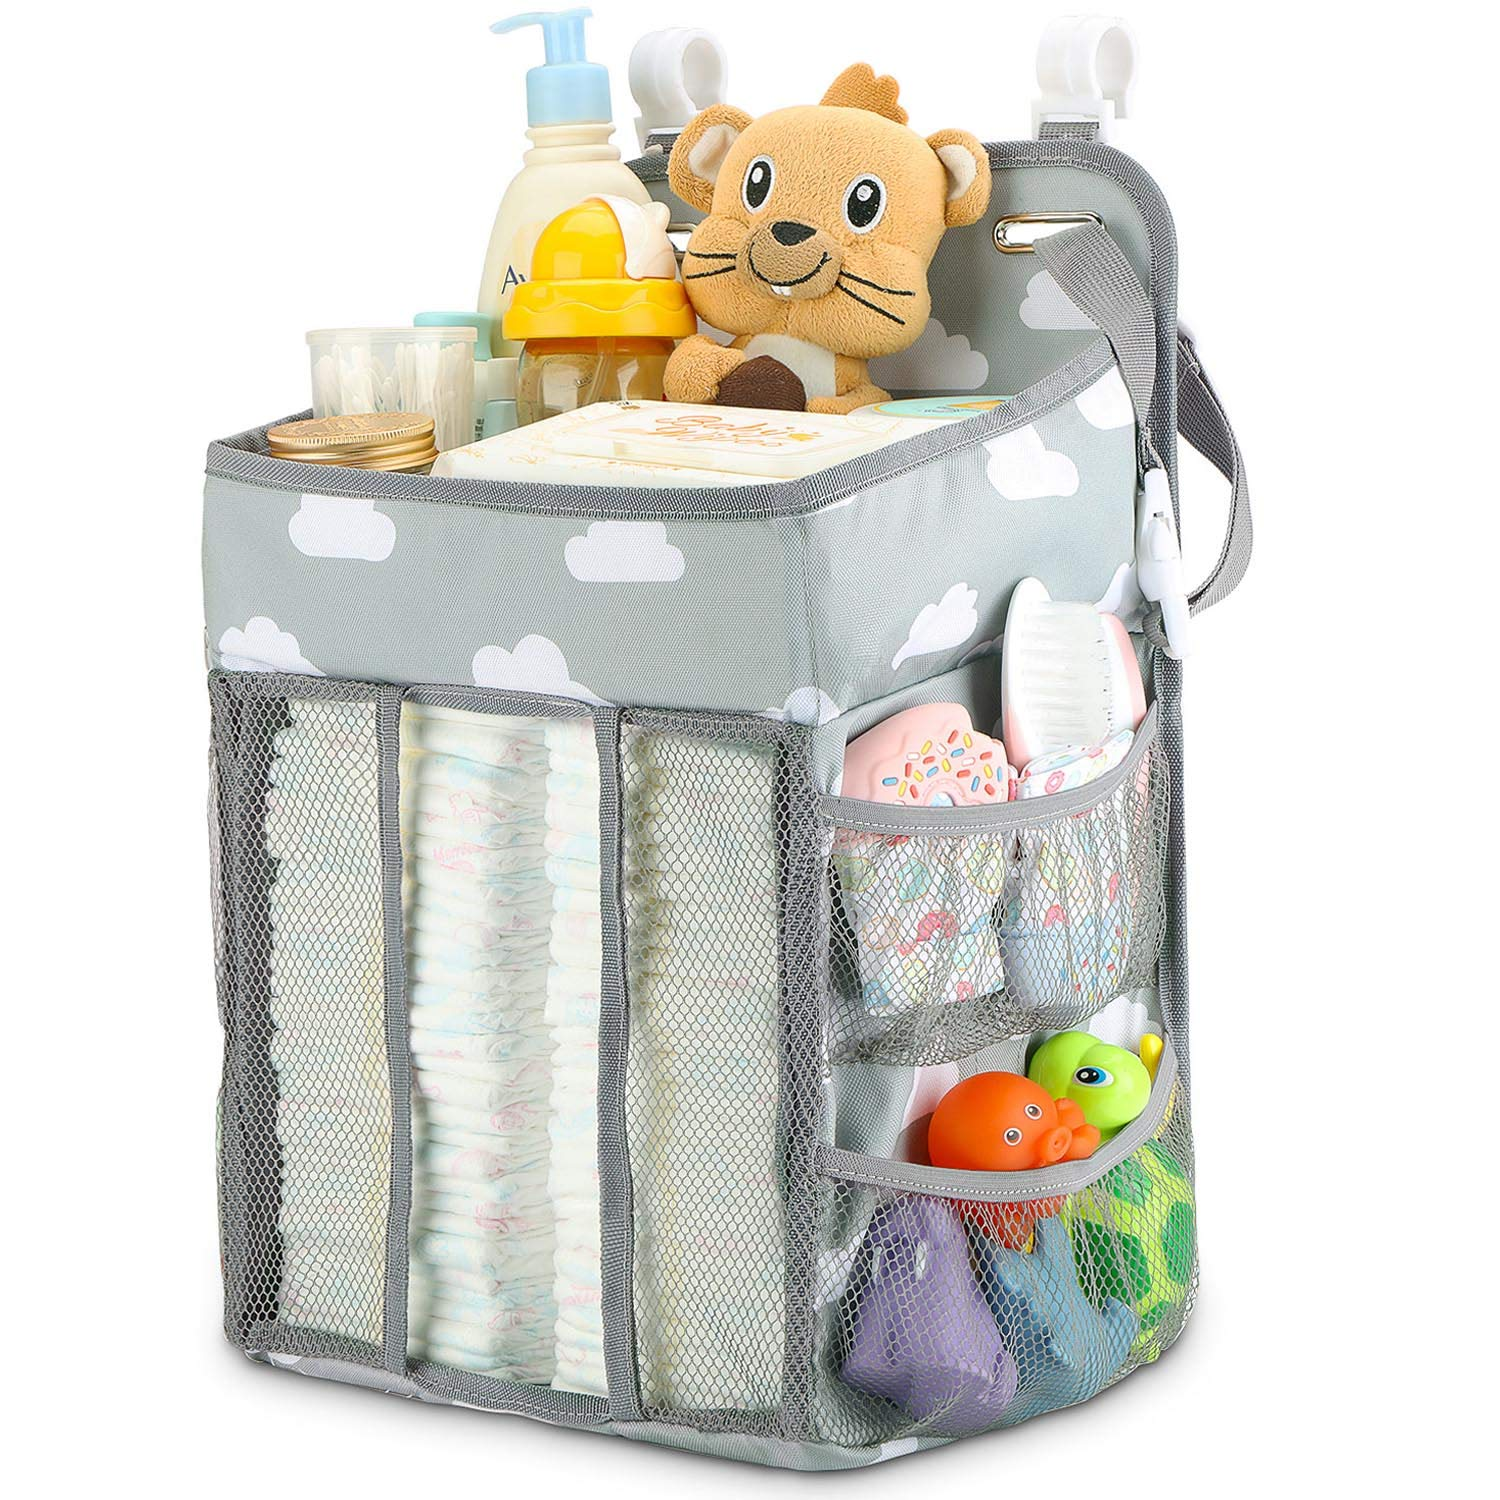 Hanging Diaper Caddy Organizer for Changing Table Stain-Resistant Diaper Stacker Crib 6 Shelves /& 2 Pockets ● Nursery Organizer for Baby Girl//Boy with Reinforced Stitching /& 3 Buckle Straps